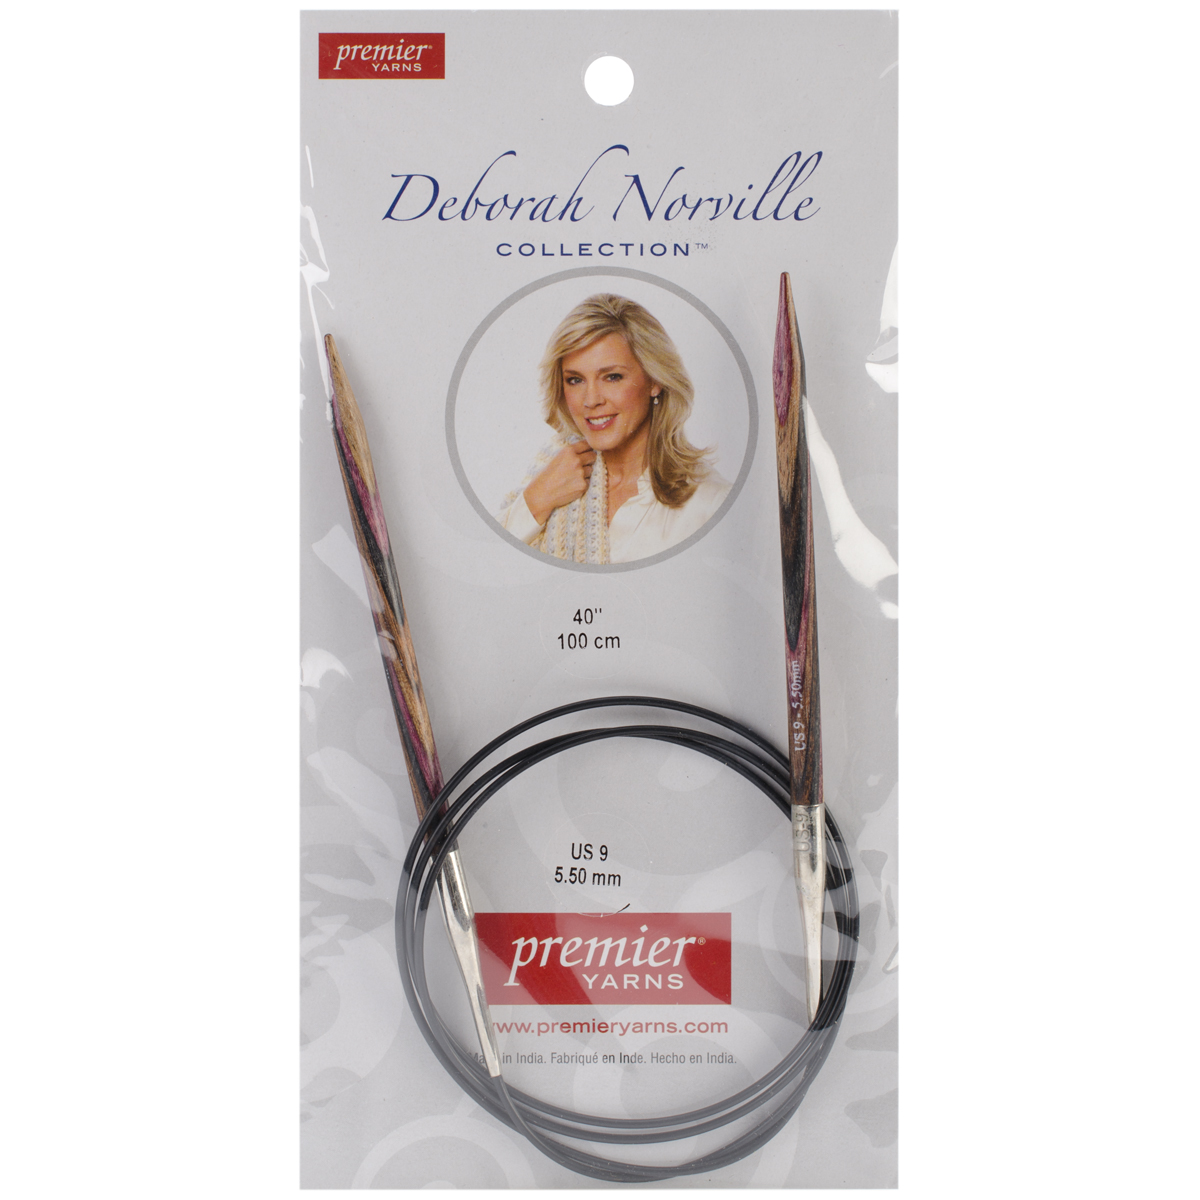 Premier Yarns Deborah Norville Fixed Circular Needles, 40-Inch, 9/5.5mm Multi-Colored